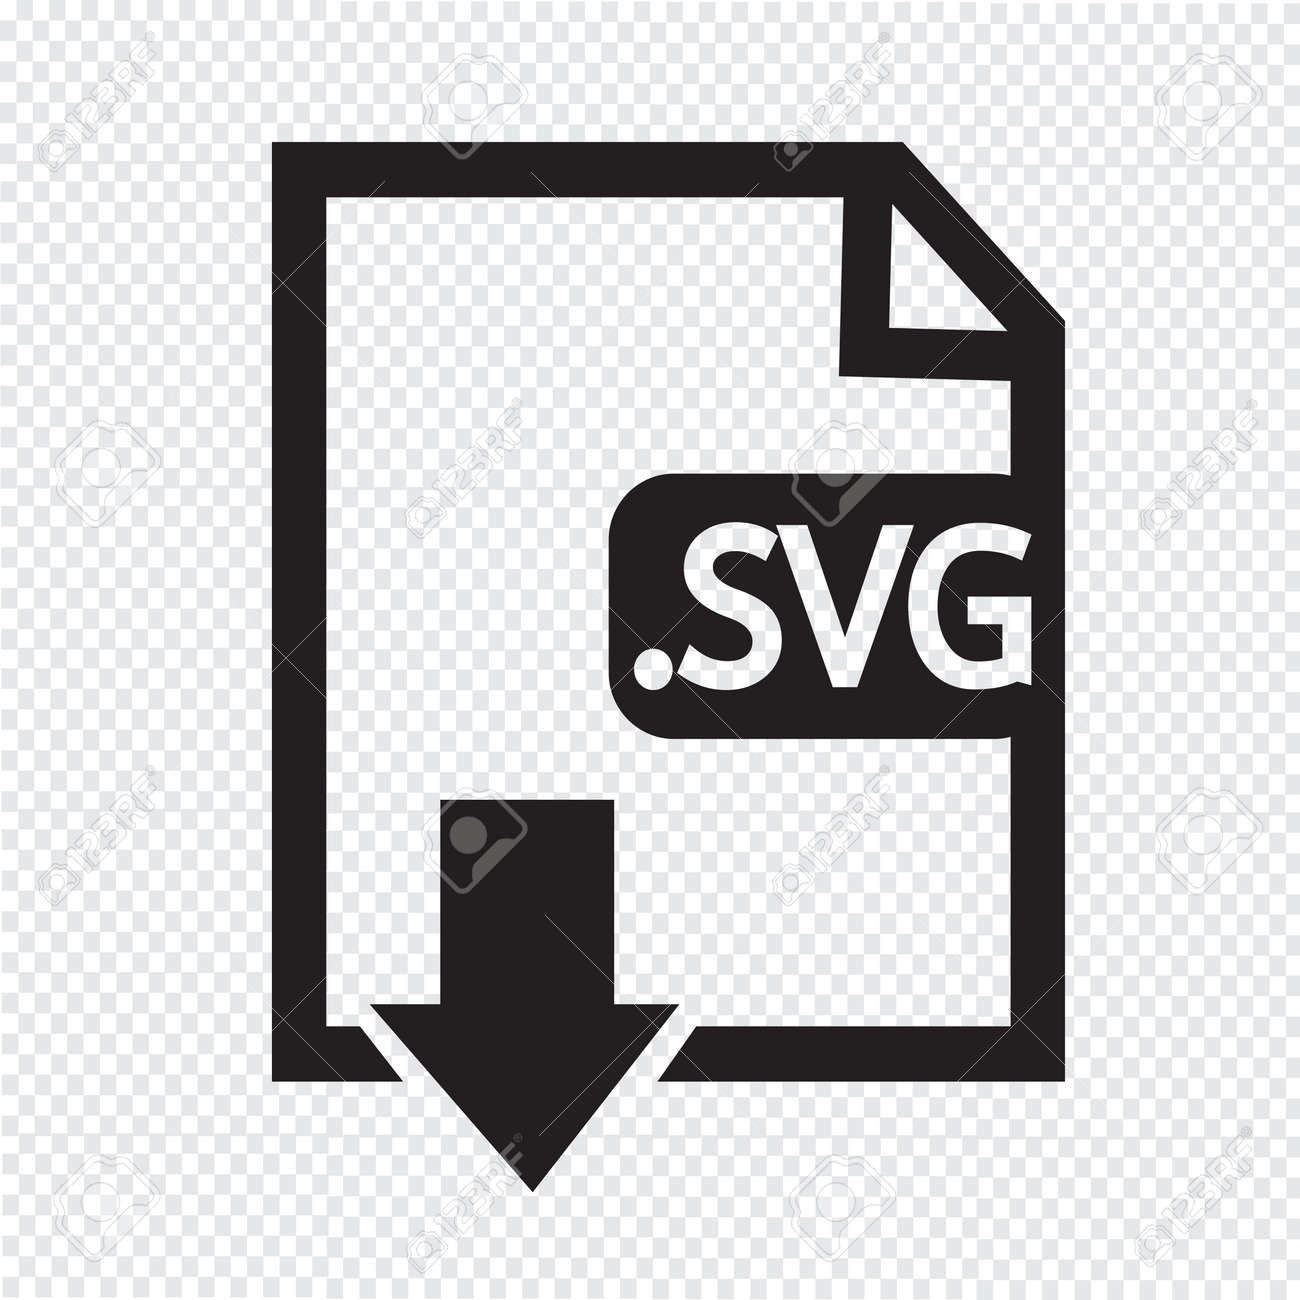 Image File type Format SVG icon Stock Vector - 38412135